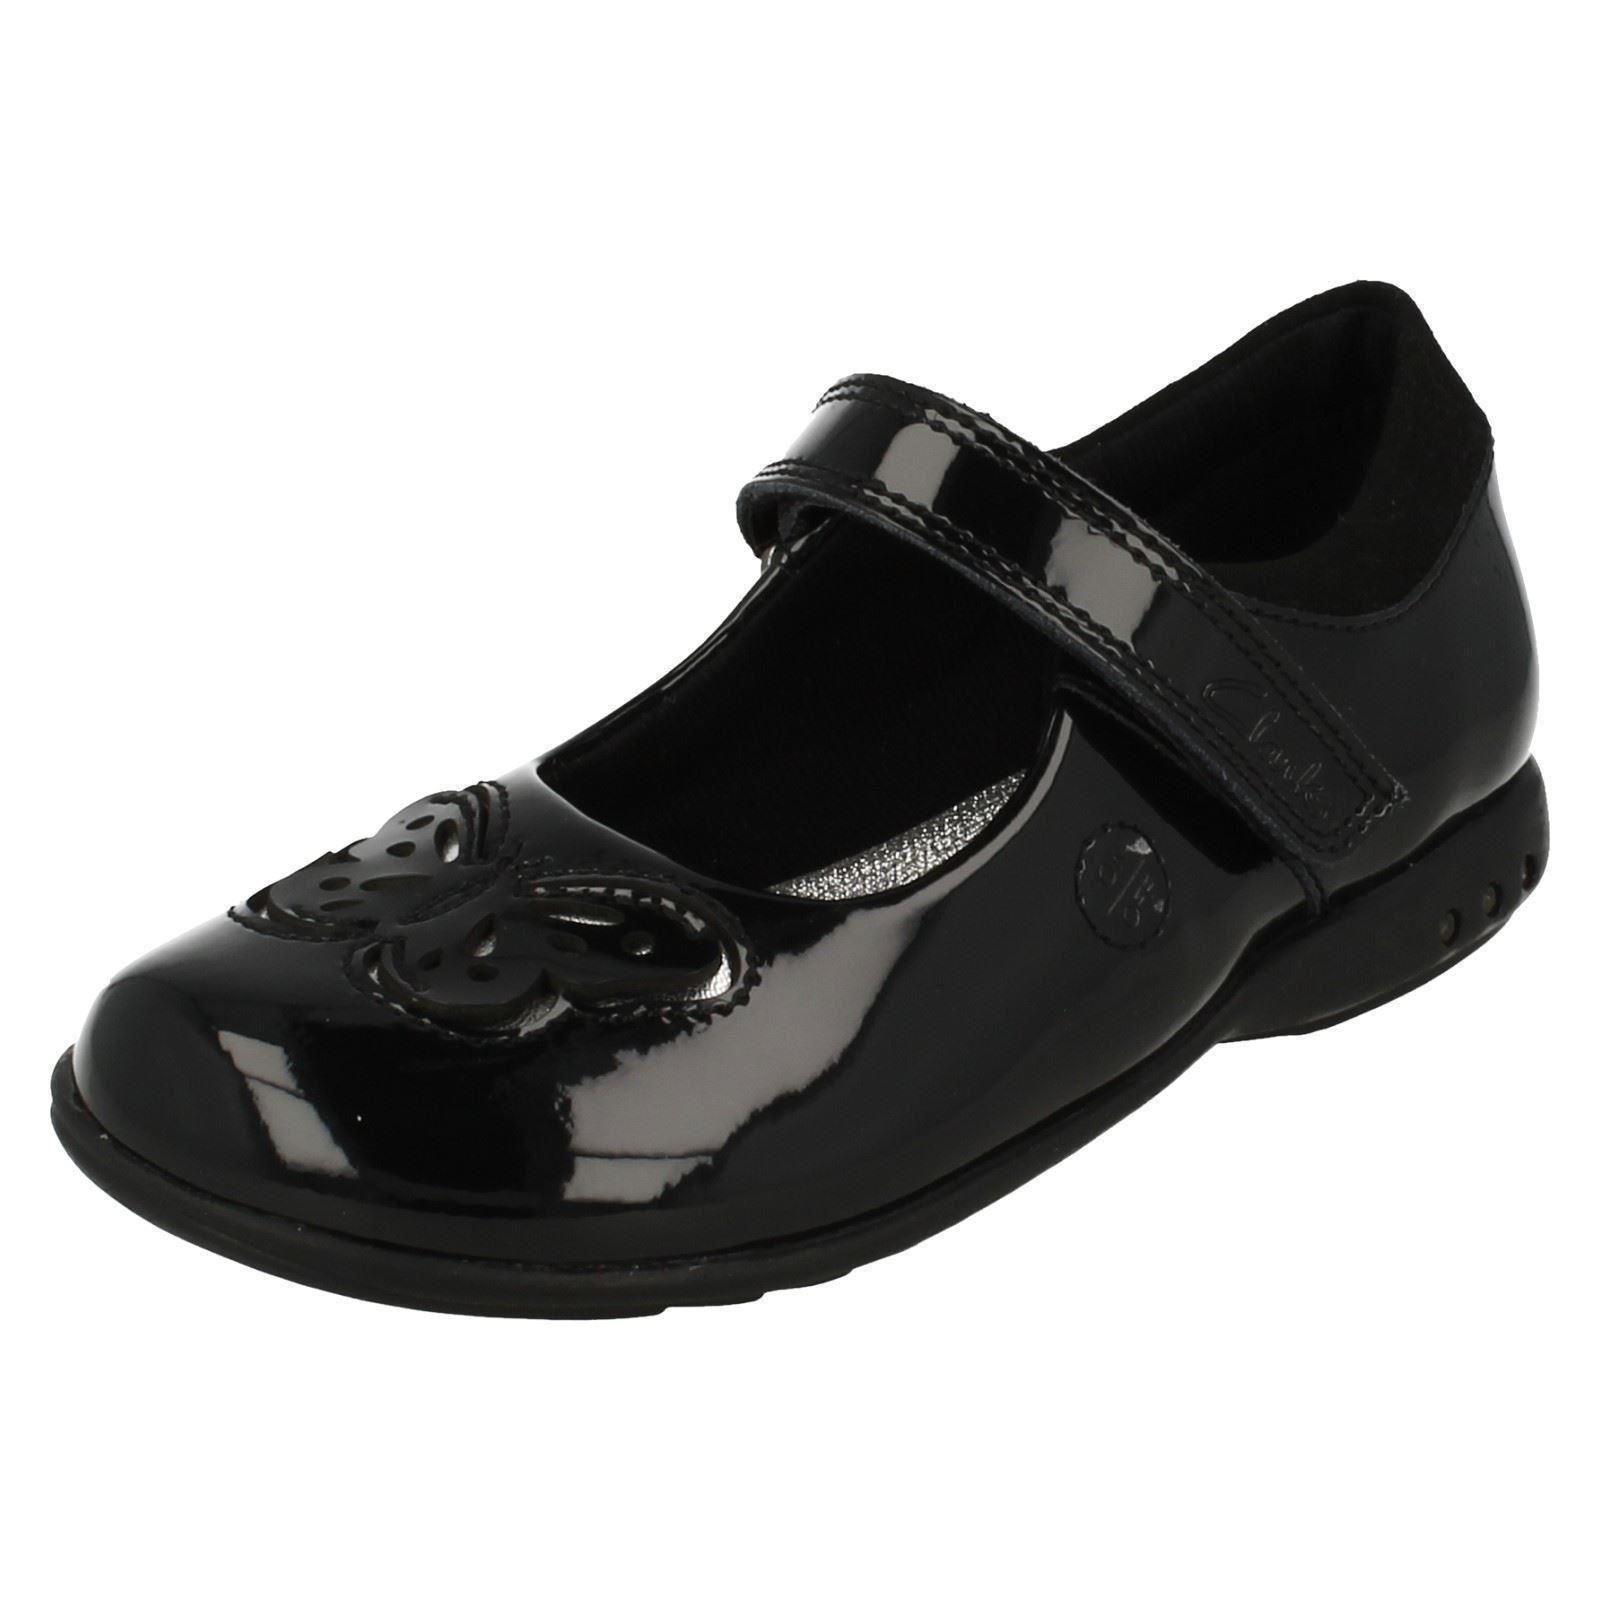 6407bfdd122c Girls Clarks Lights on School Shoes Trixi Rose UK 7.5 Infant Black Patent  F. About this product. Picture 1 of 10  Picture 2 of 10 ...